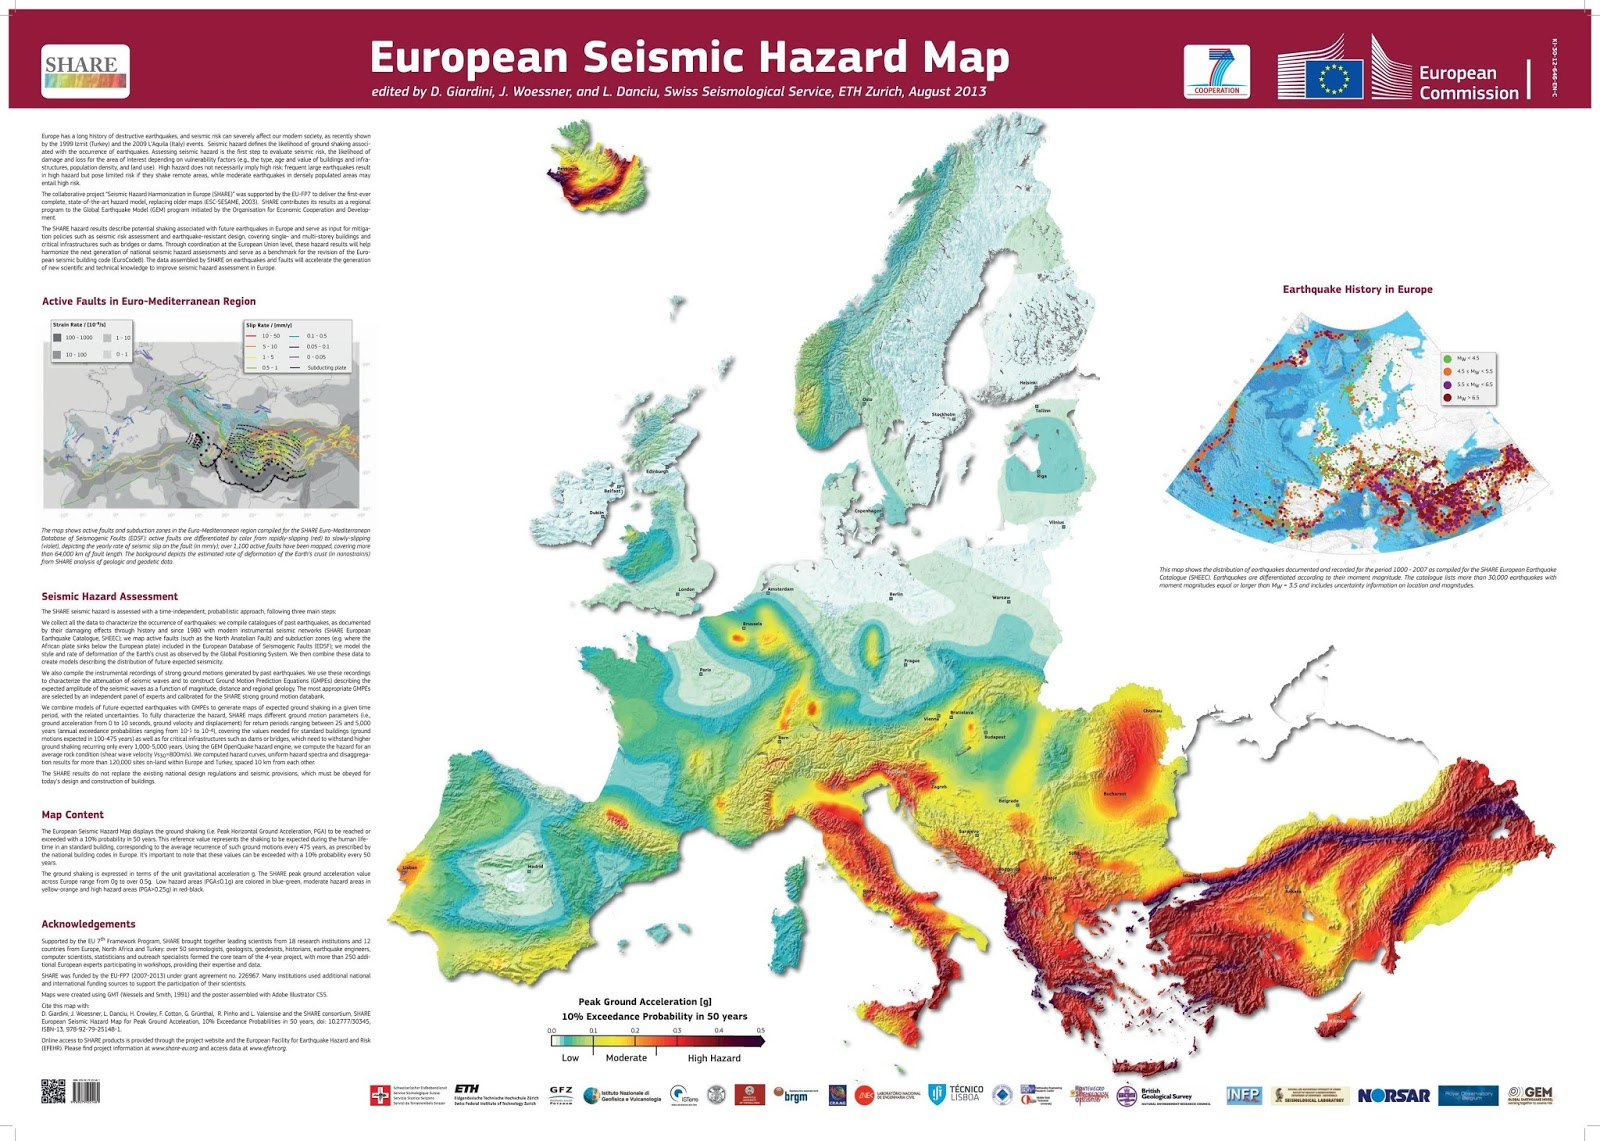 European seismic hazard map